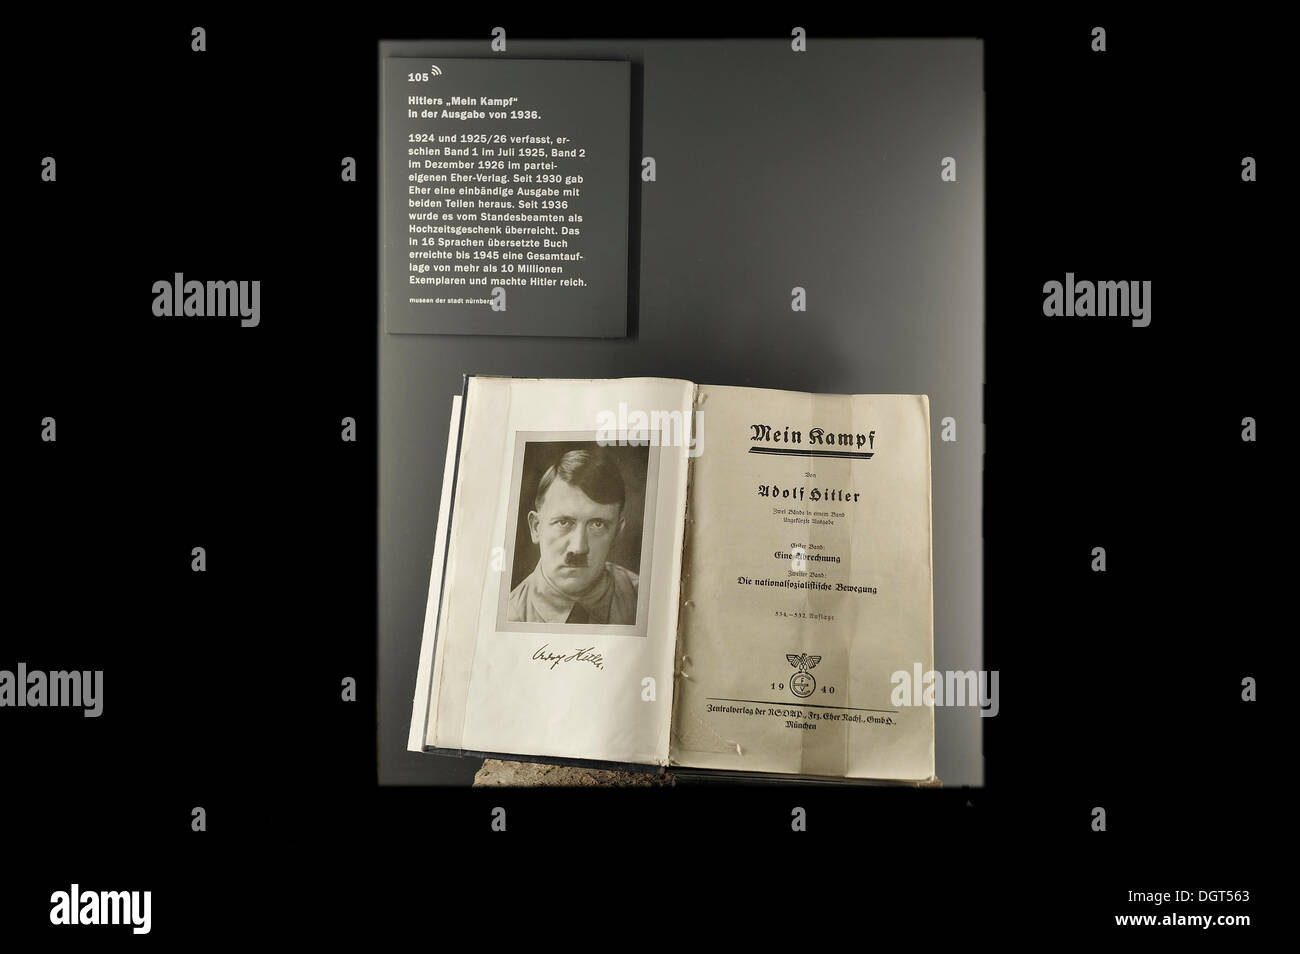 The book 'Mein Kampf', 1936 edition, by Adolf Hitler, part of the permanent exhibition, 'Fascination and Violence', in the - Stock Image